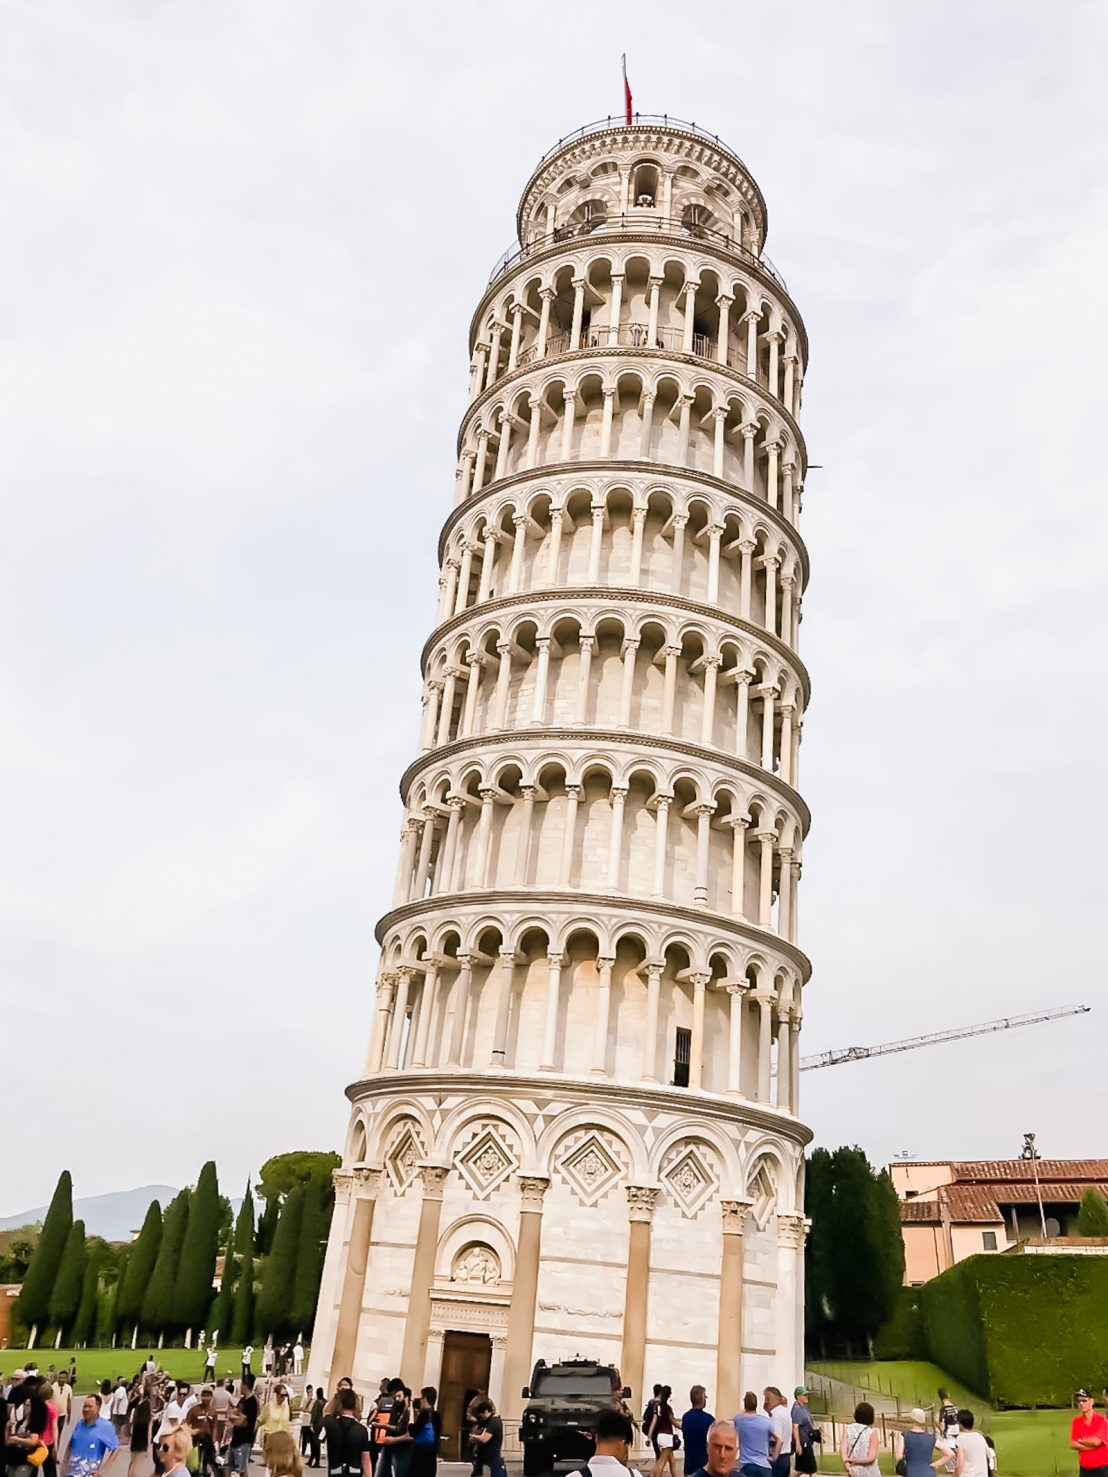 A front shot of the leaning tower of Pisa in Pisa, Italy.